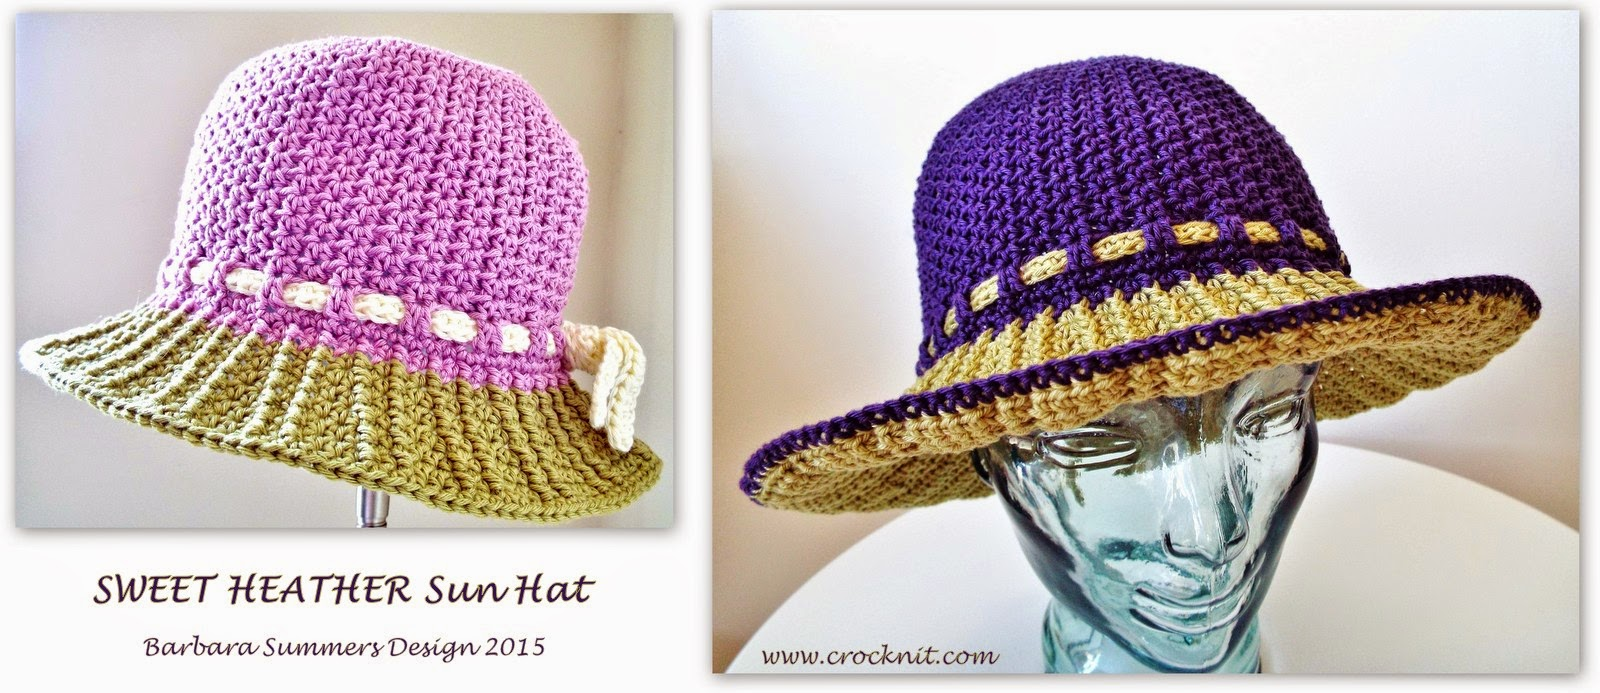 MICROCKNIT CREATIONS: SUN HAT - SHORT and LONG BRIM